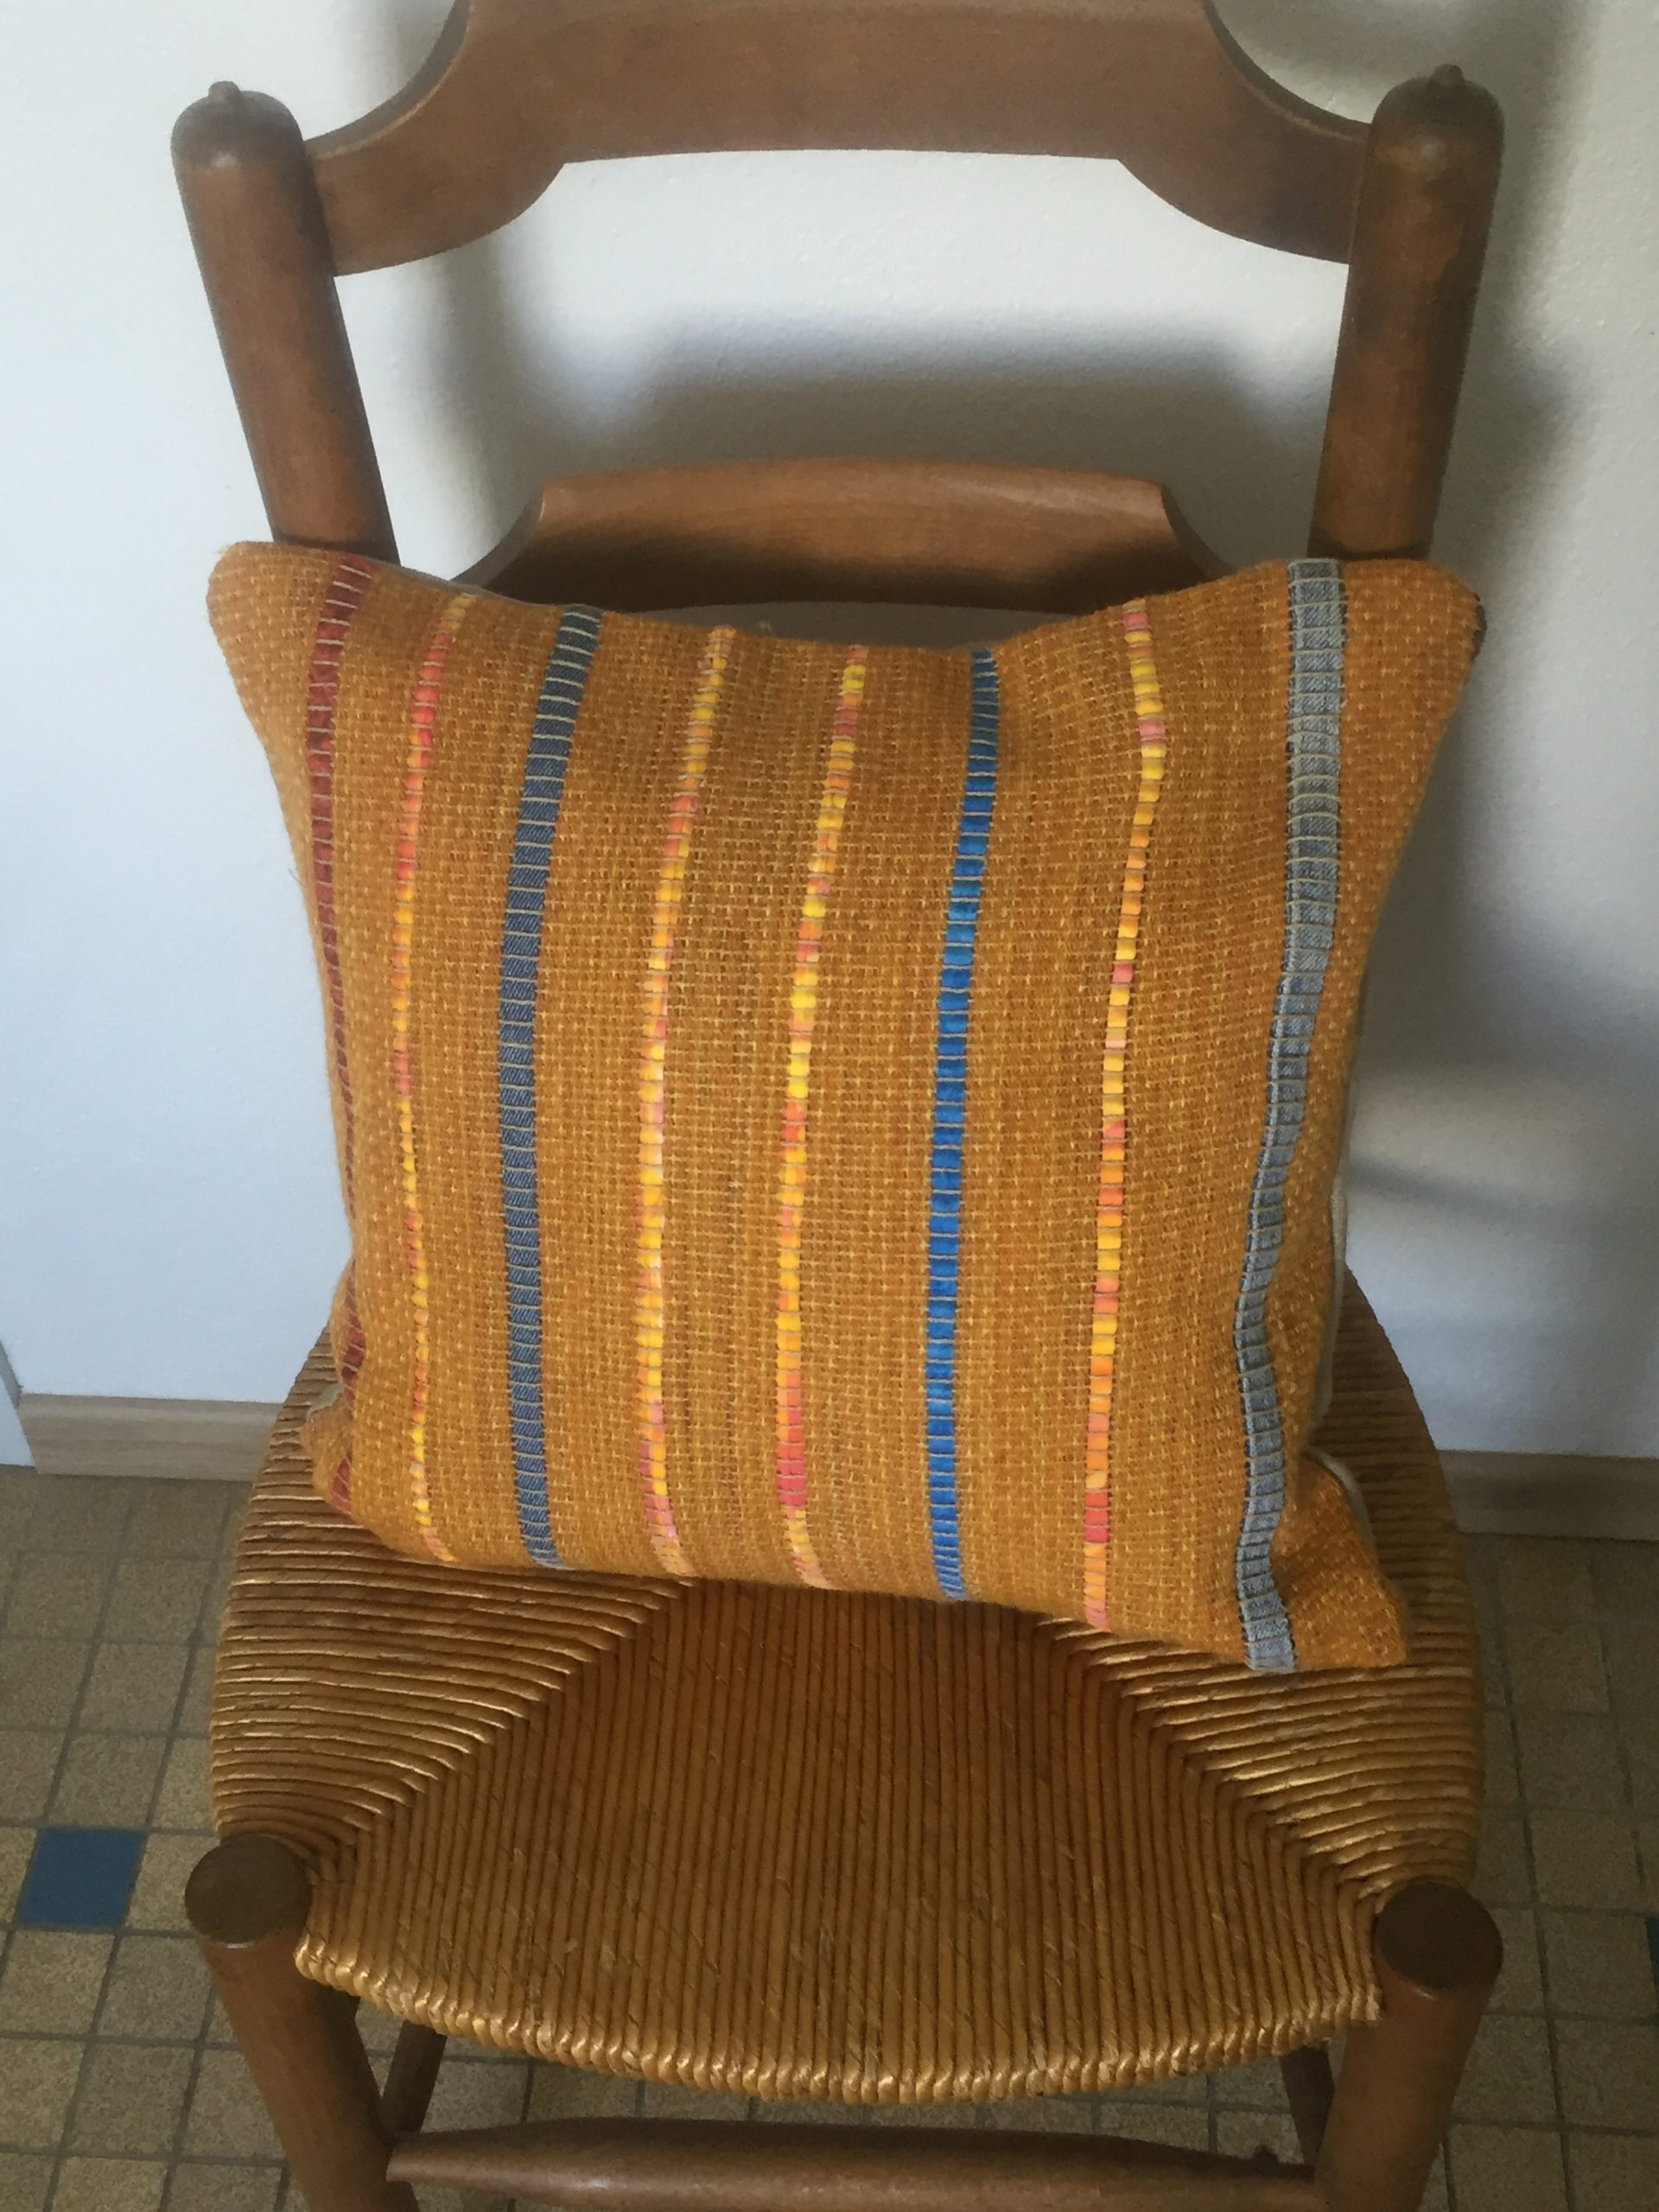 Handwoven Cushion Cover 50€ 40cm x 40cm (1 / 2)